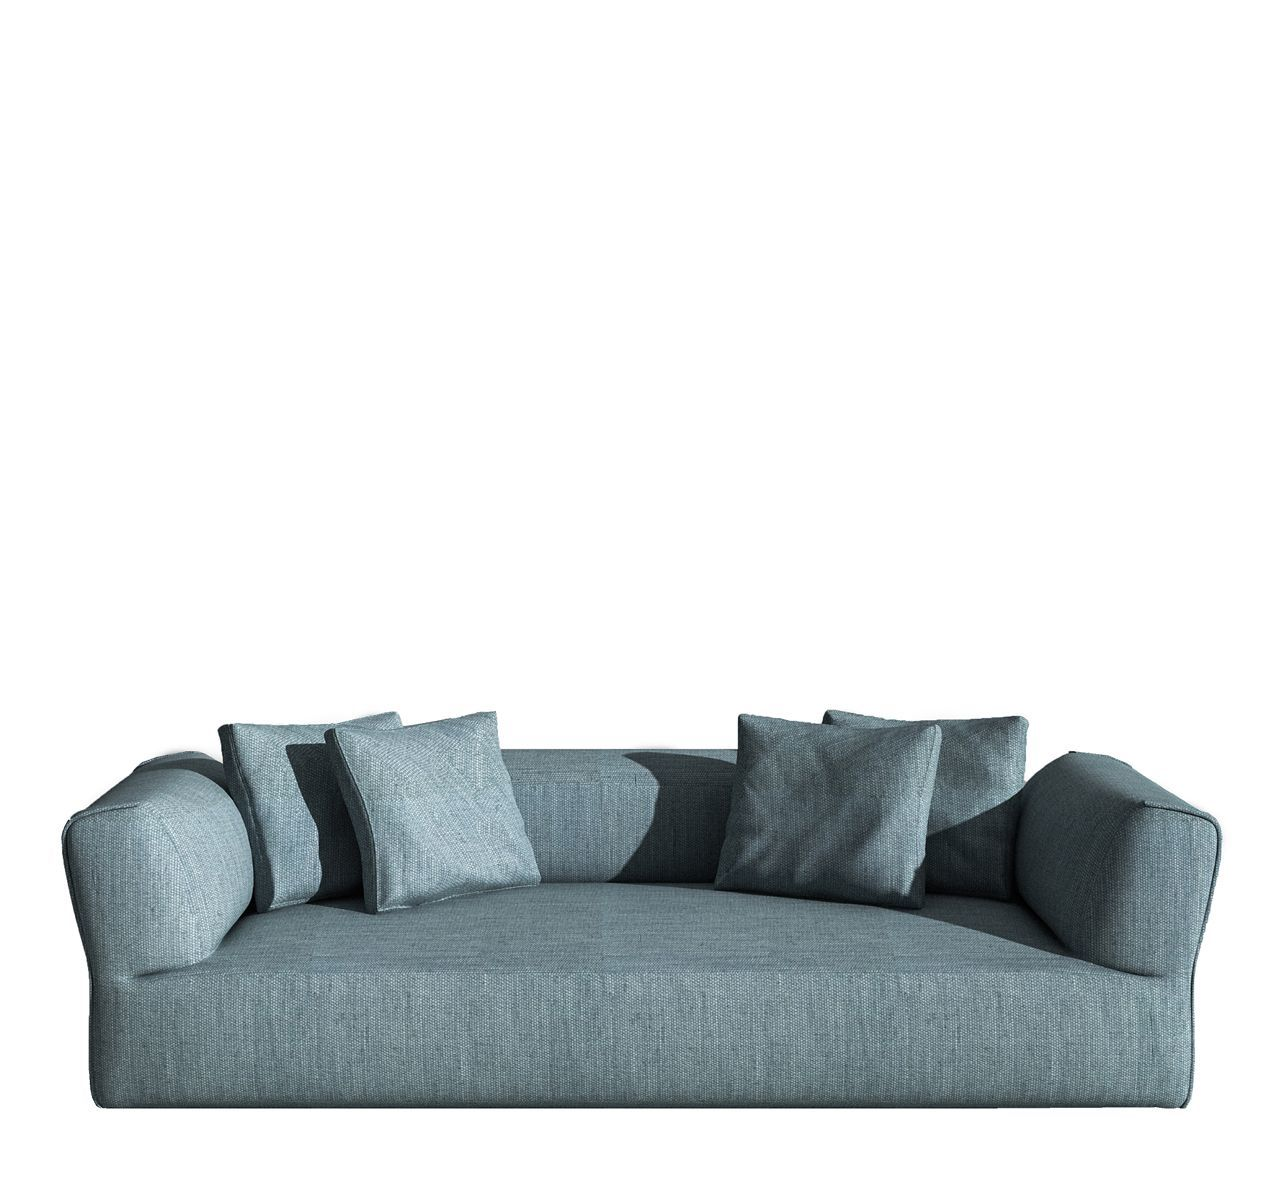 finest wesley hall sofa concept-Fascinating Wesley Hall sofa Wallpaper